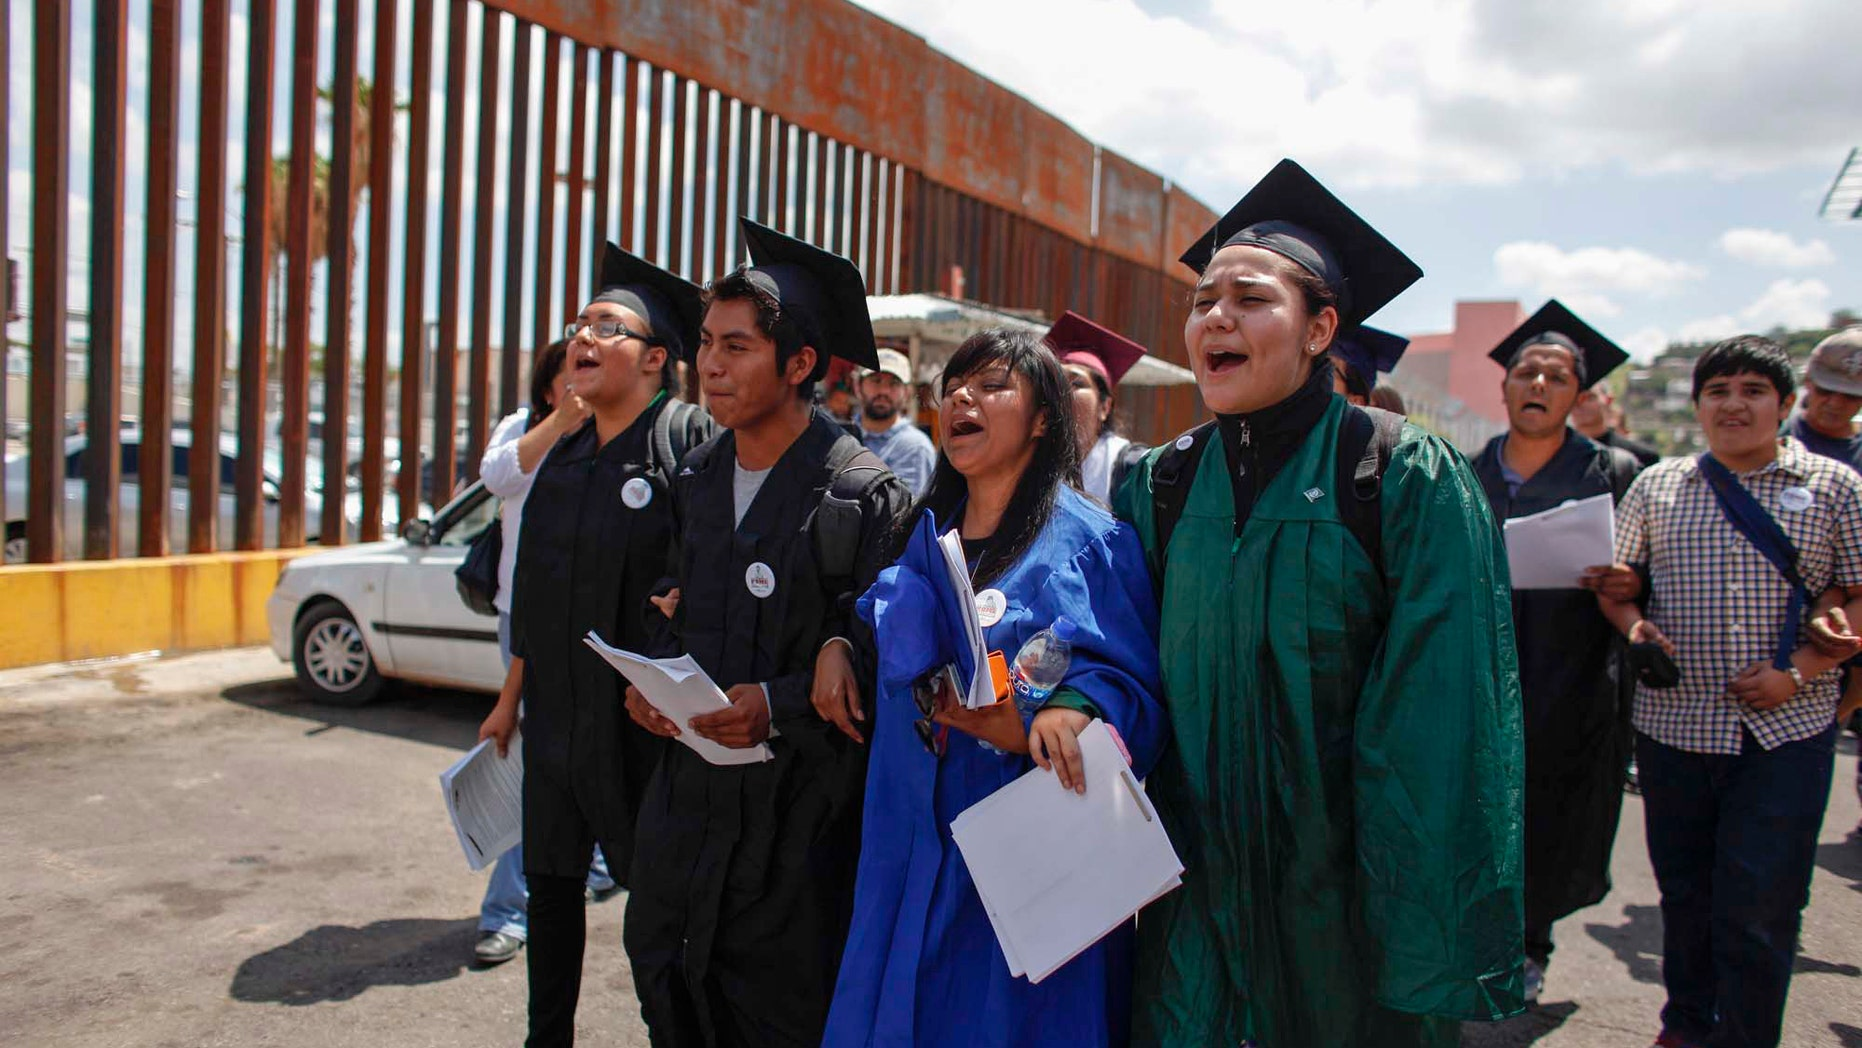 'Dreamers' wearing their school graduation caps and gowns to show their desire to finish school in the U.S., march to the U.S. port of entry in Nogales, Mexico, July 22, 2013.